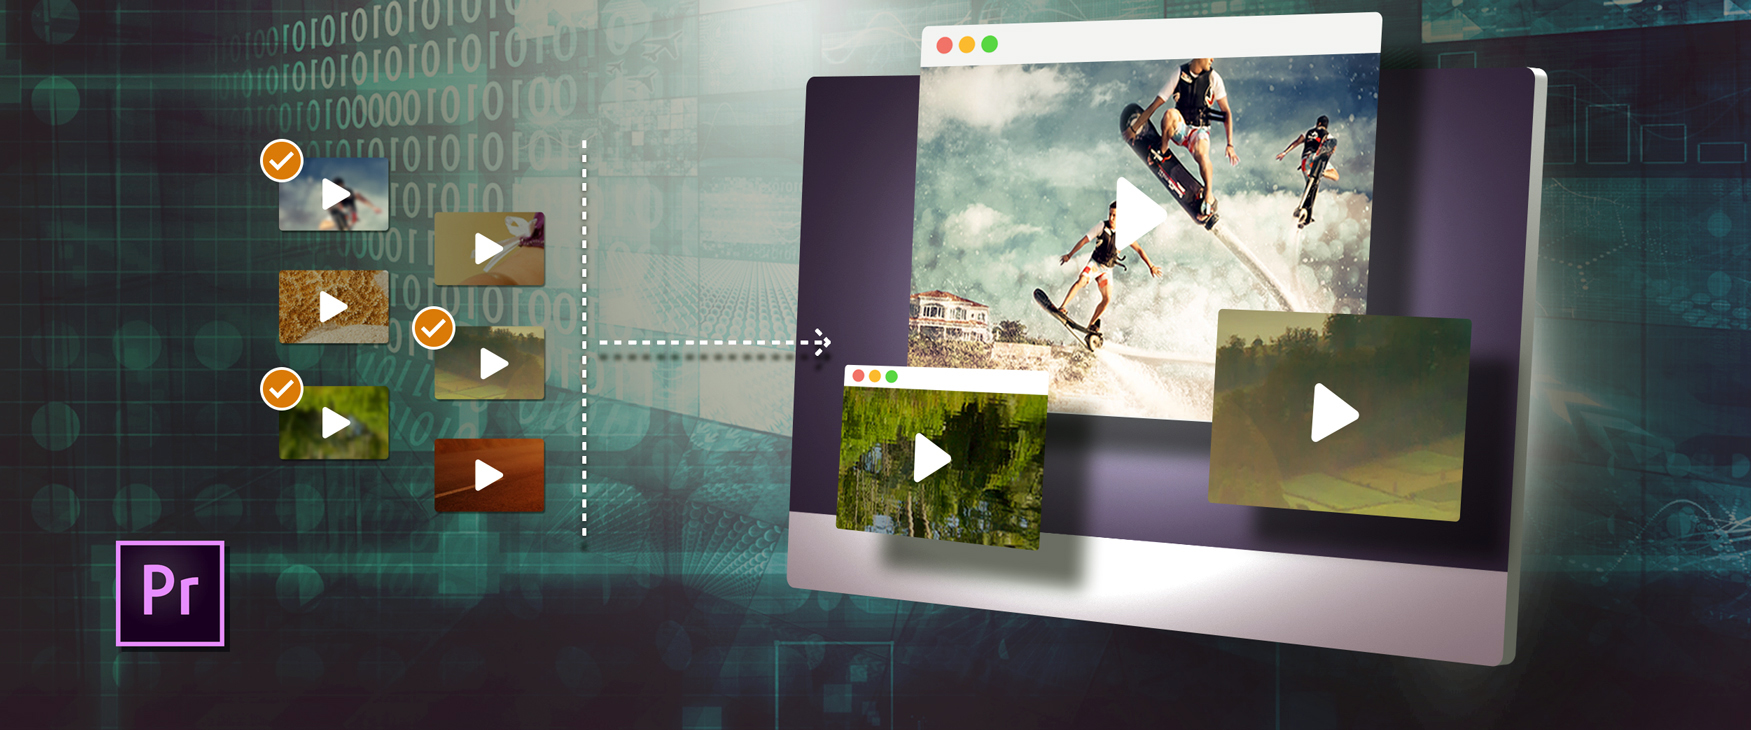 What's New in Adobe Media Encoder